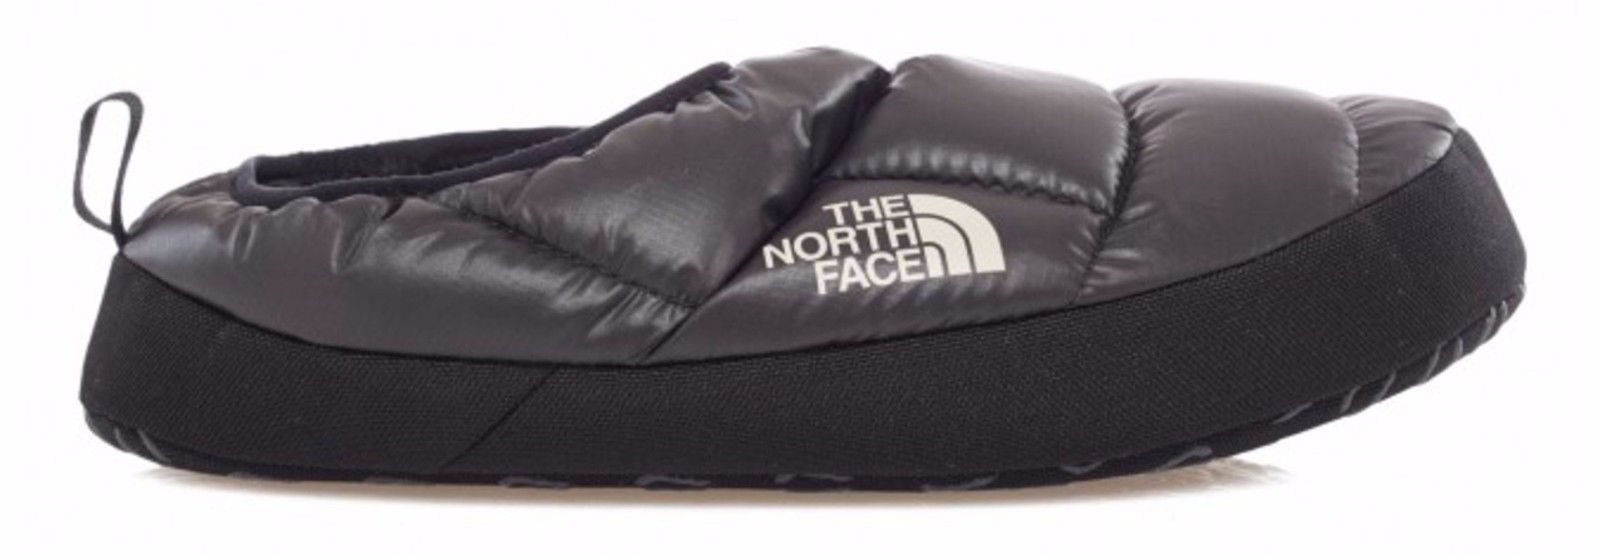 Slippers 11505 The North Face Men S Nse Tent Mule Iii Slippers Slip-Ons  sc 1 st  Pinterest & Slippers 11505: The North Face Men S Nse Tent Mule Iii Slippers ...